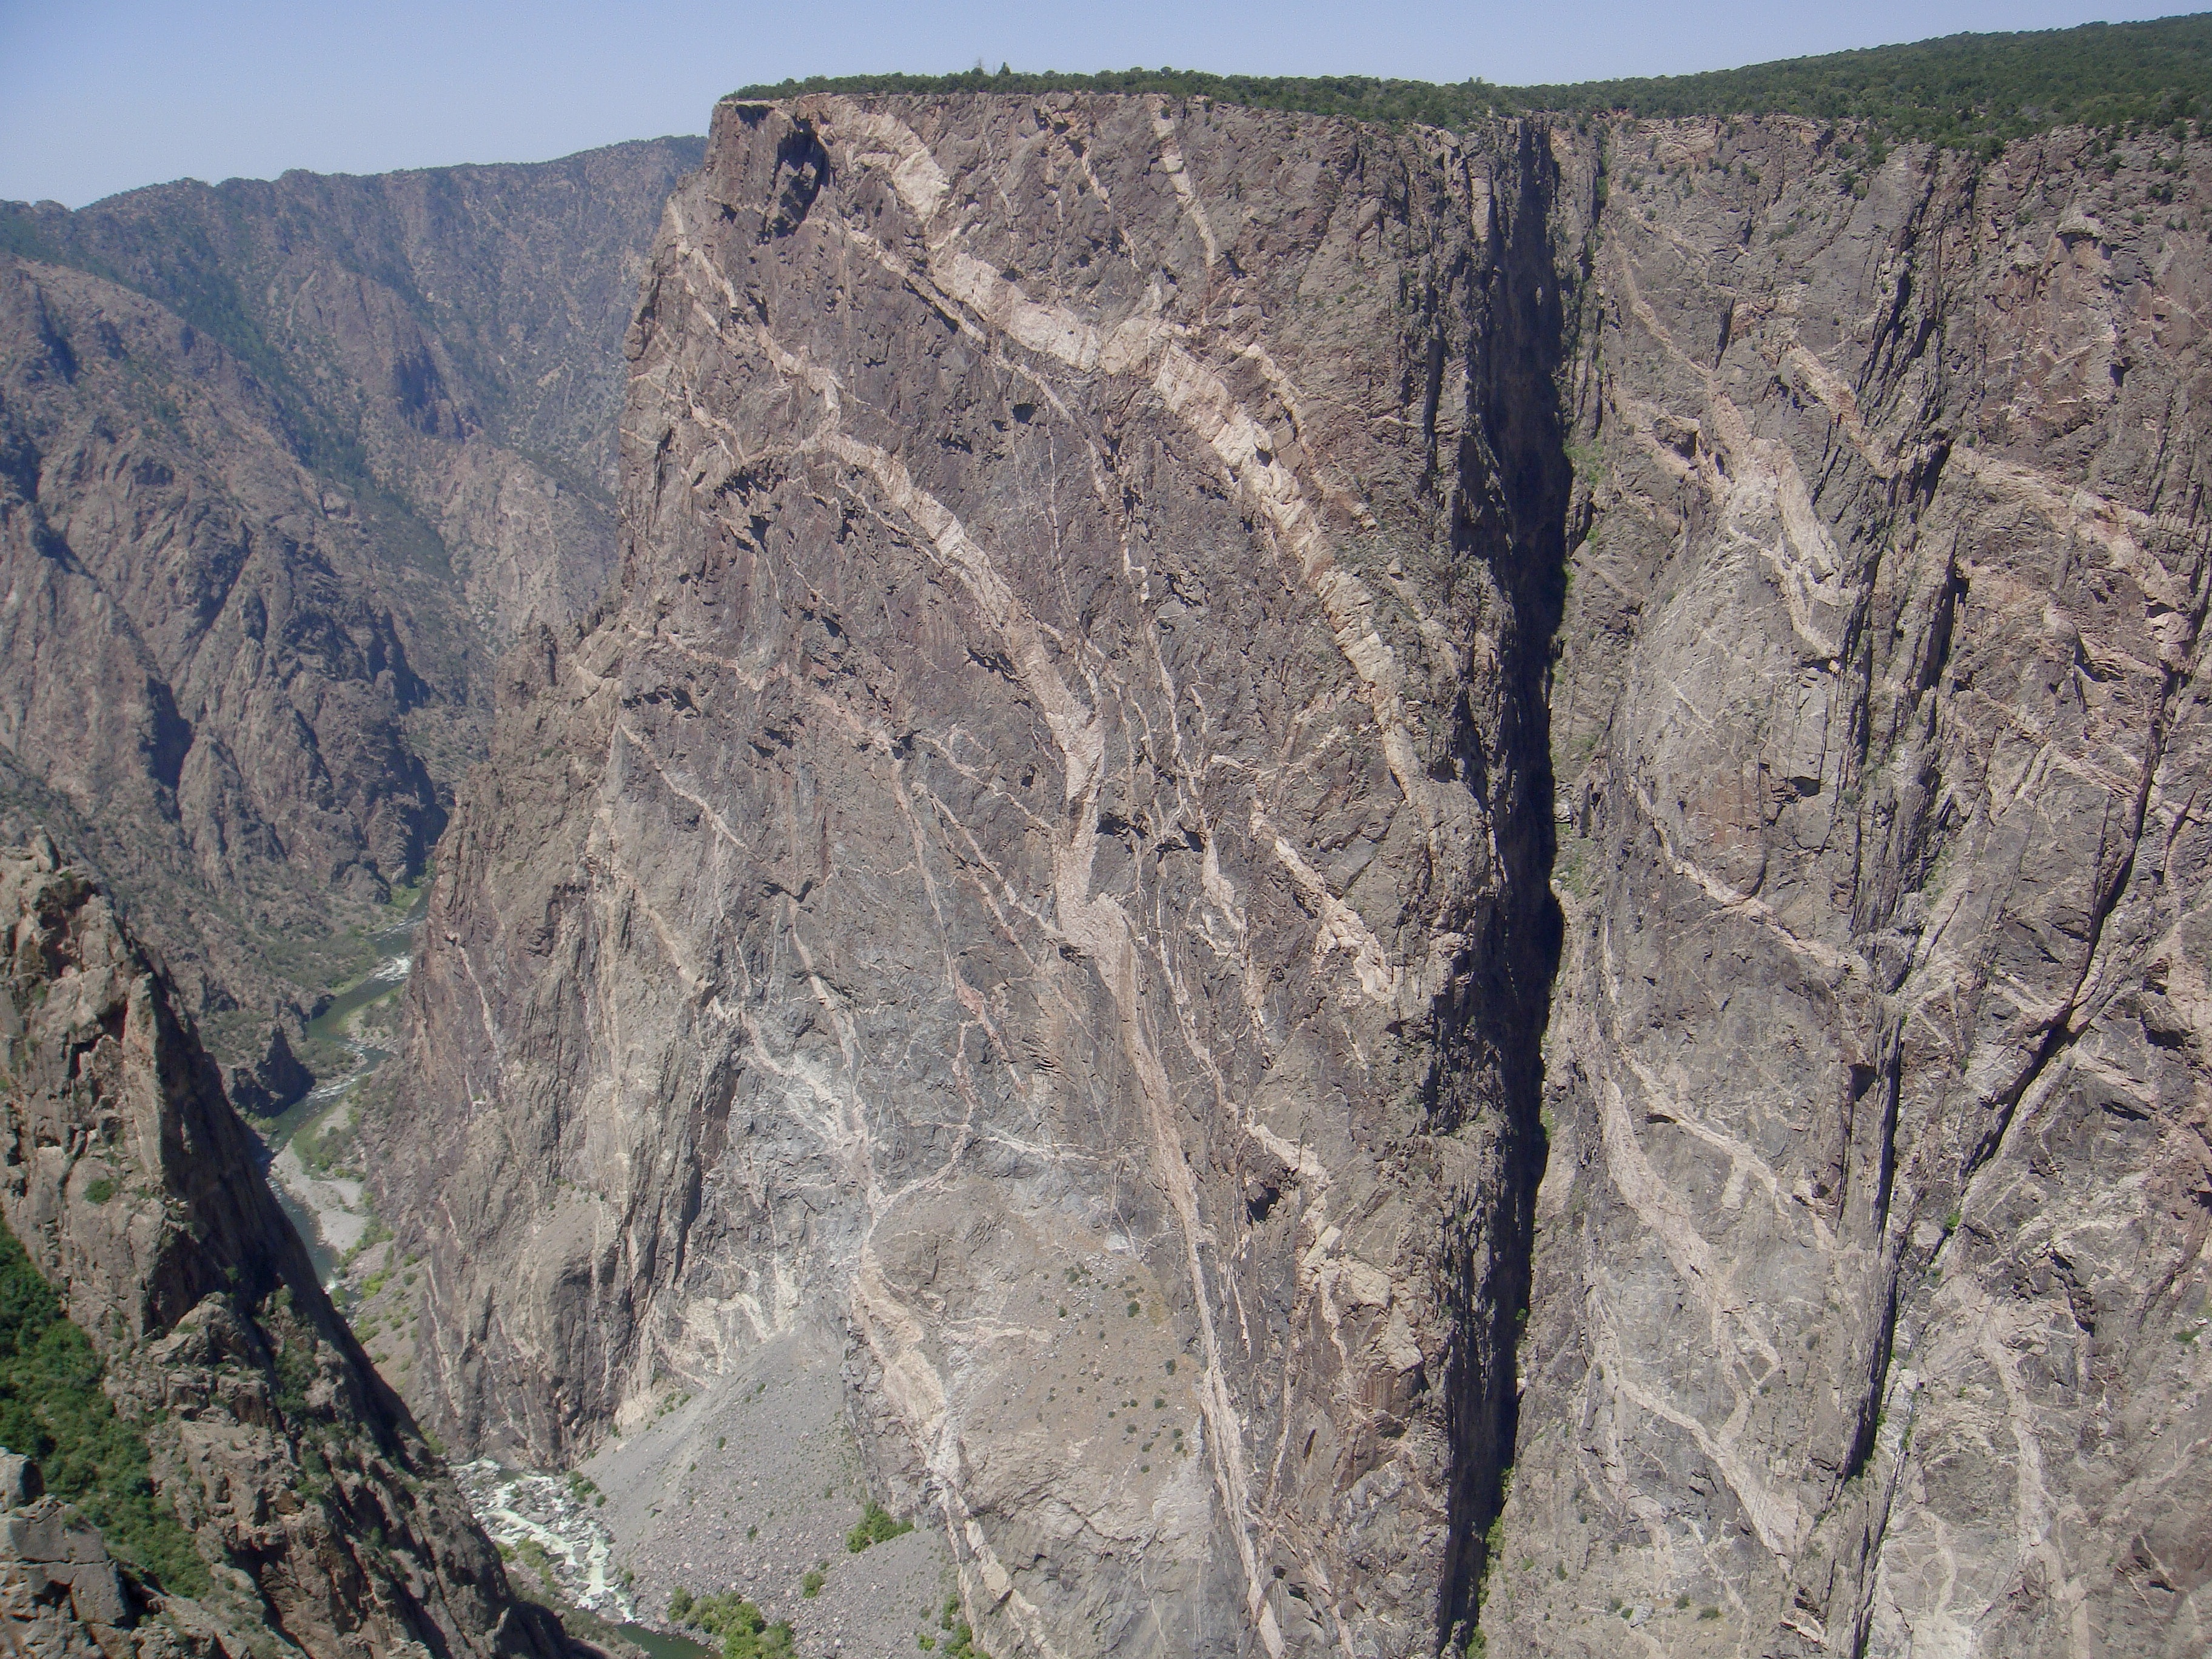 The painted wall is a large cliff